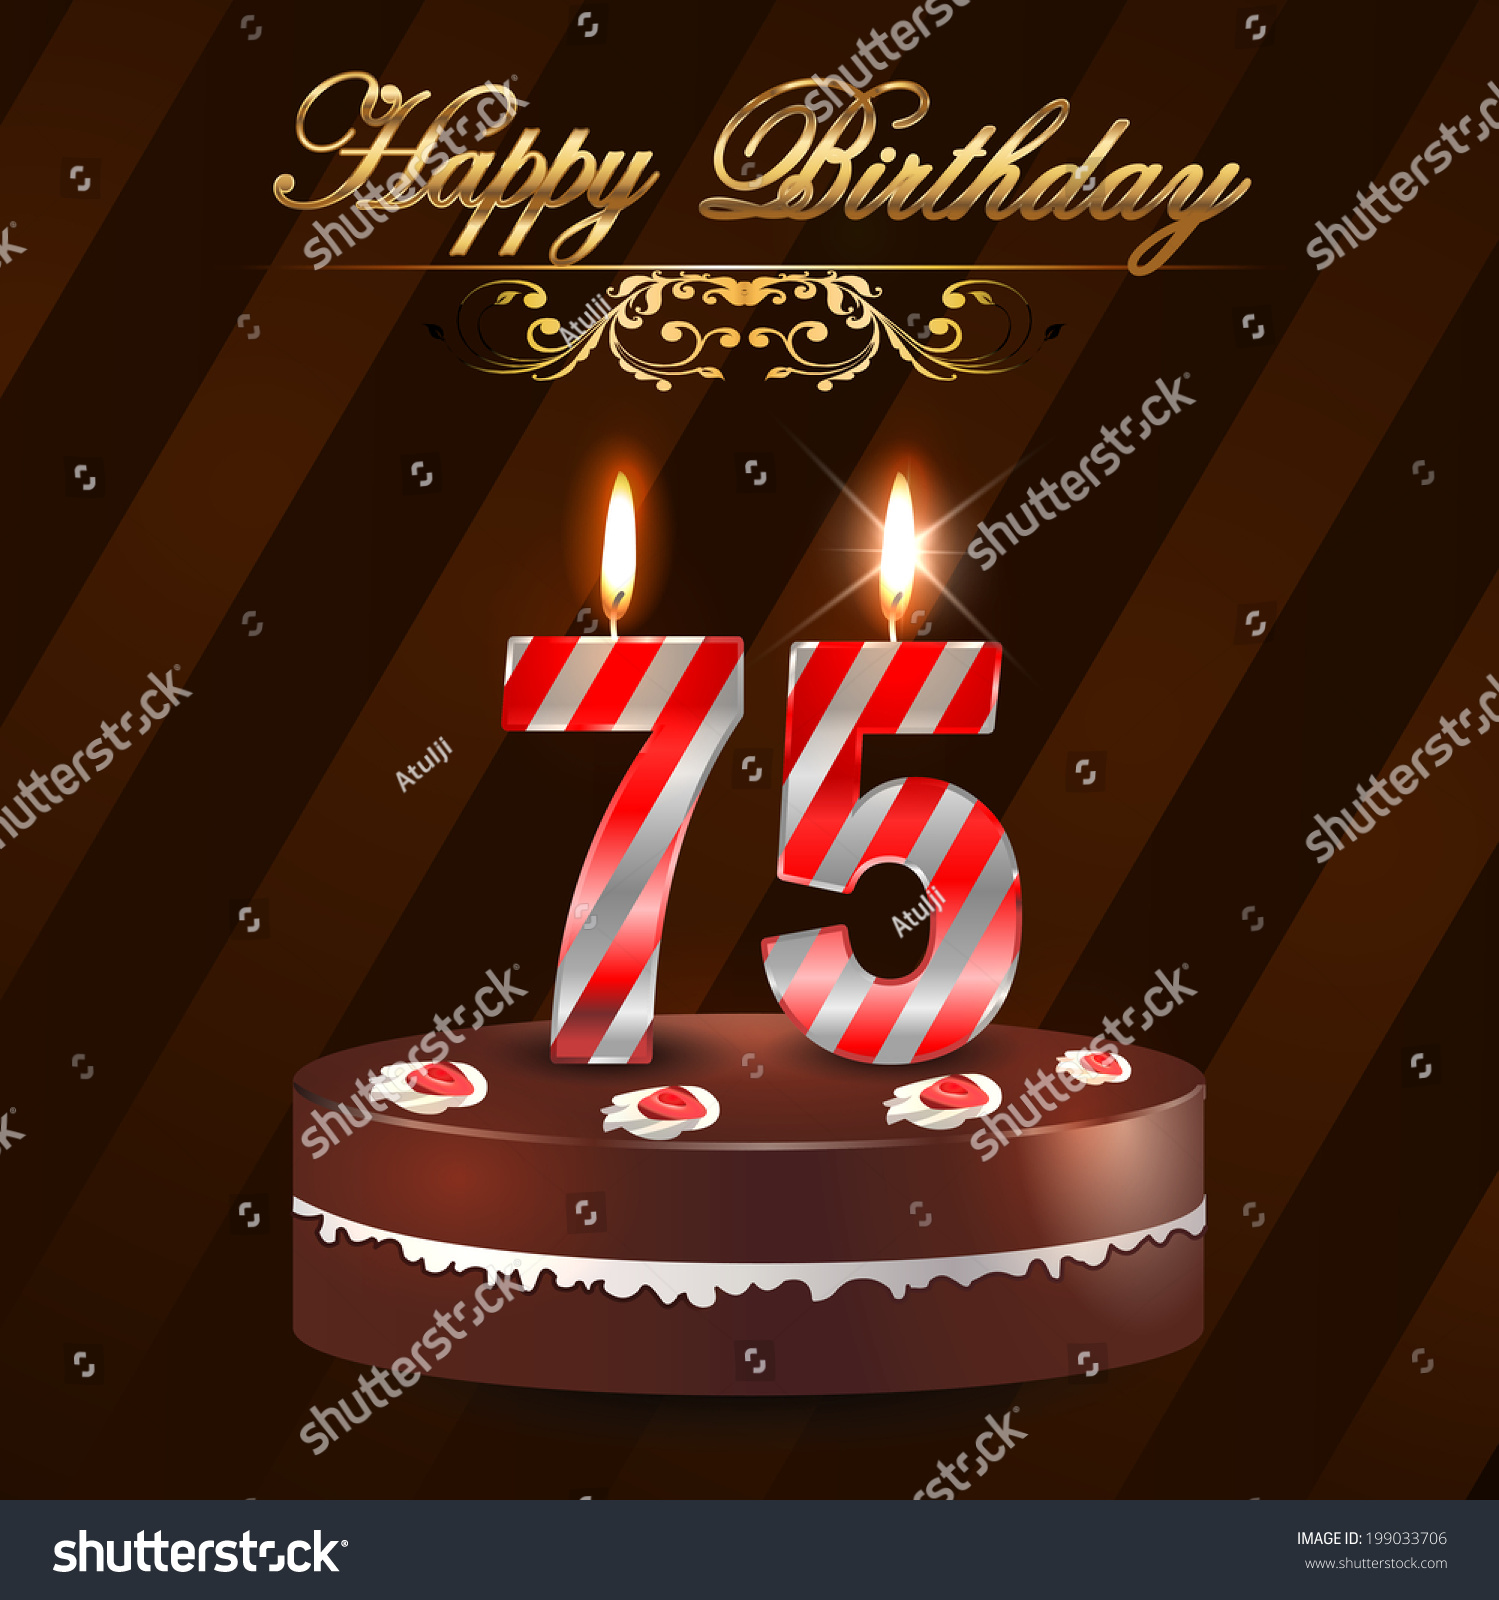 75 Year Happy Birthday Card Cake Stock Vector Shutterstock